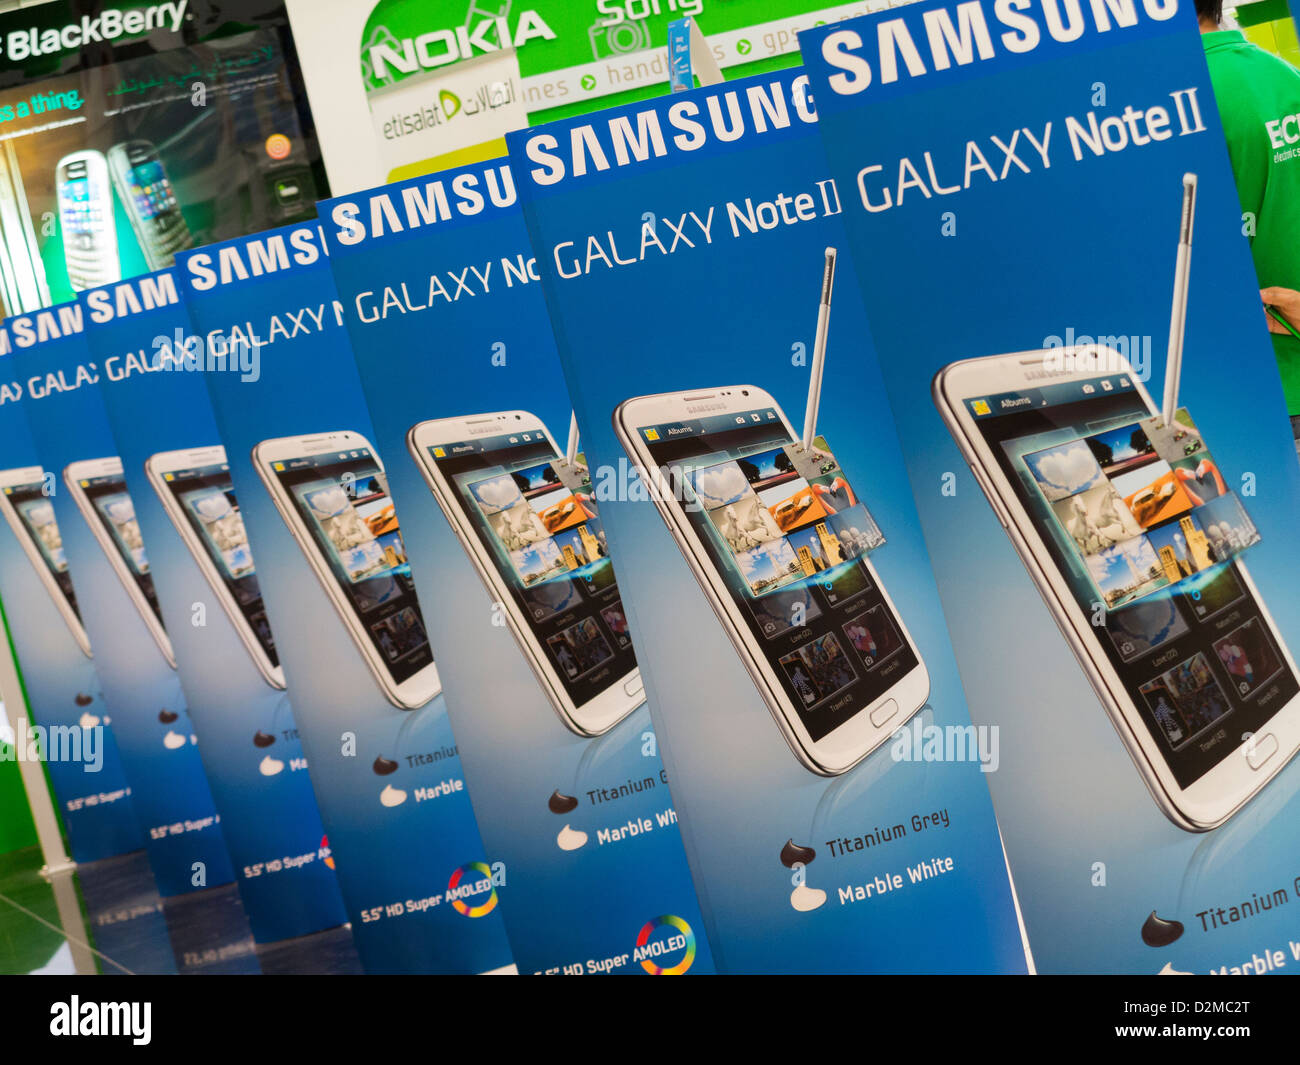 Adverts for Samsung Galaxy Note 2 - Stock Image